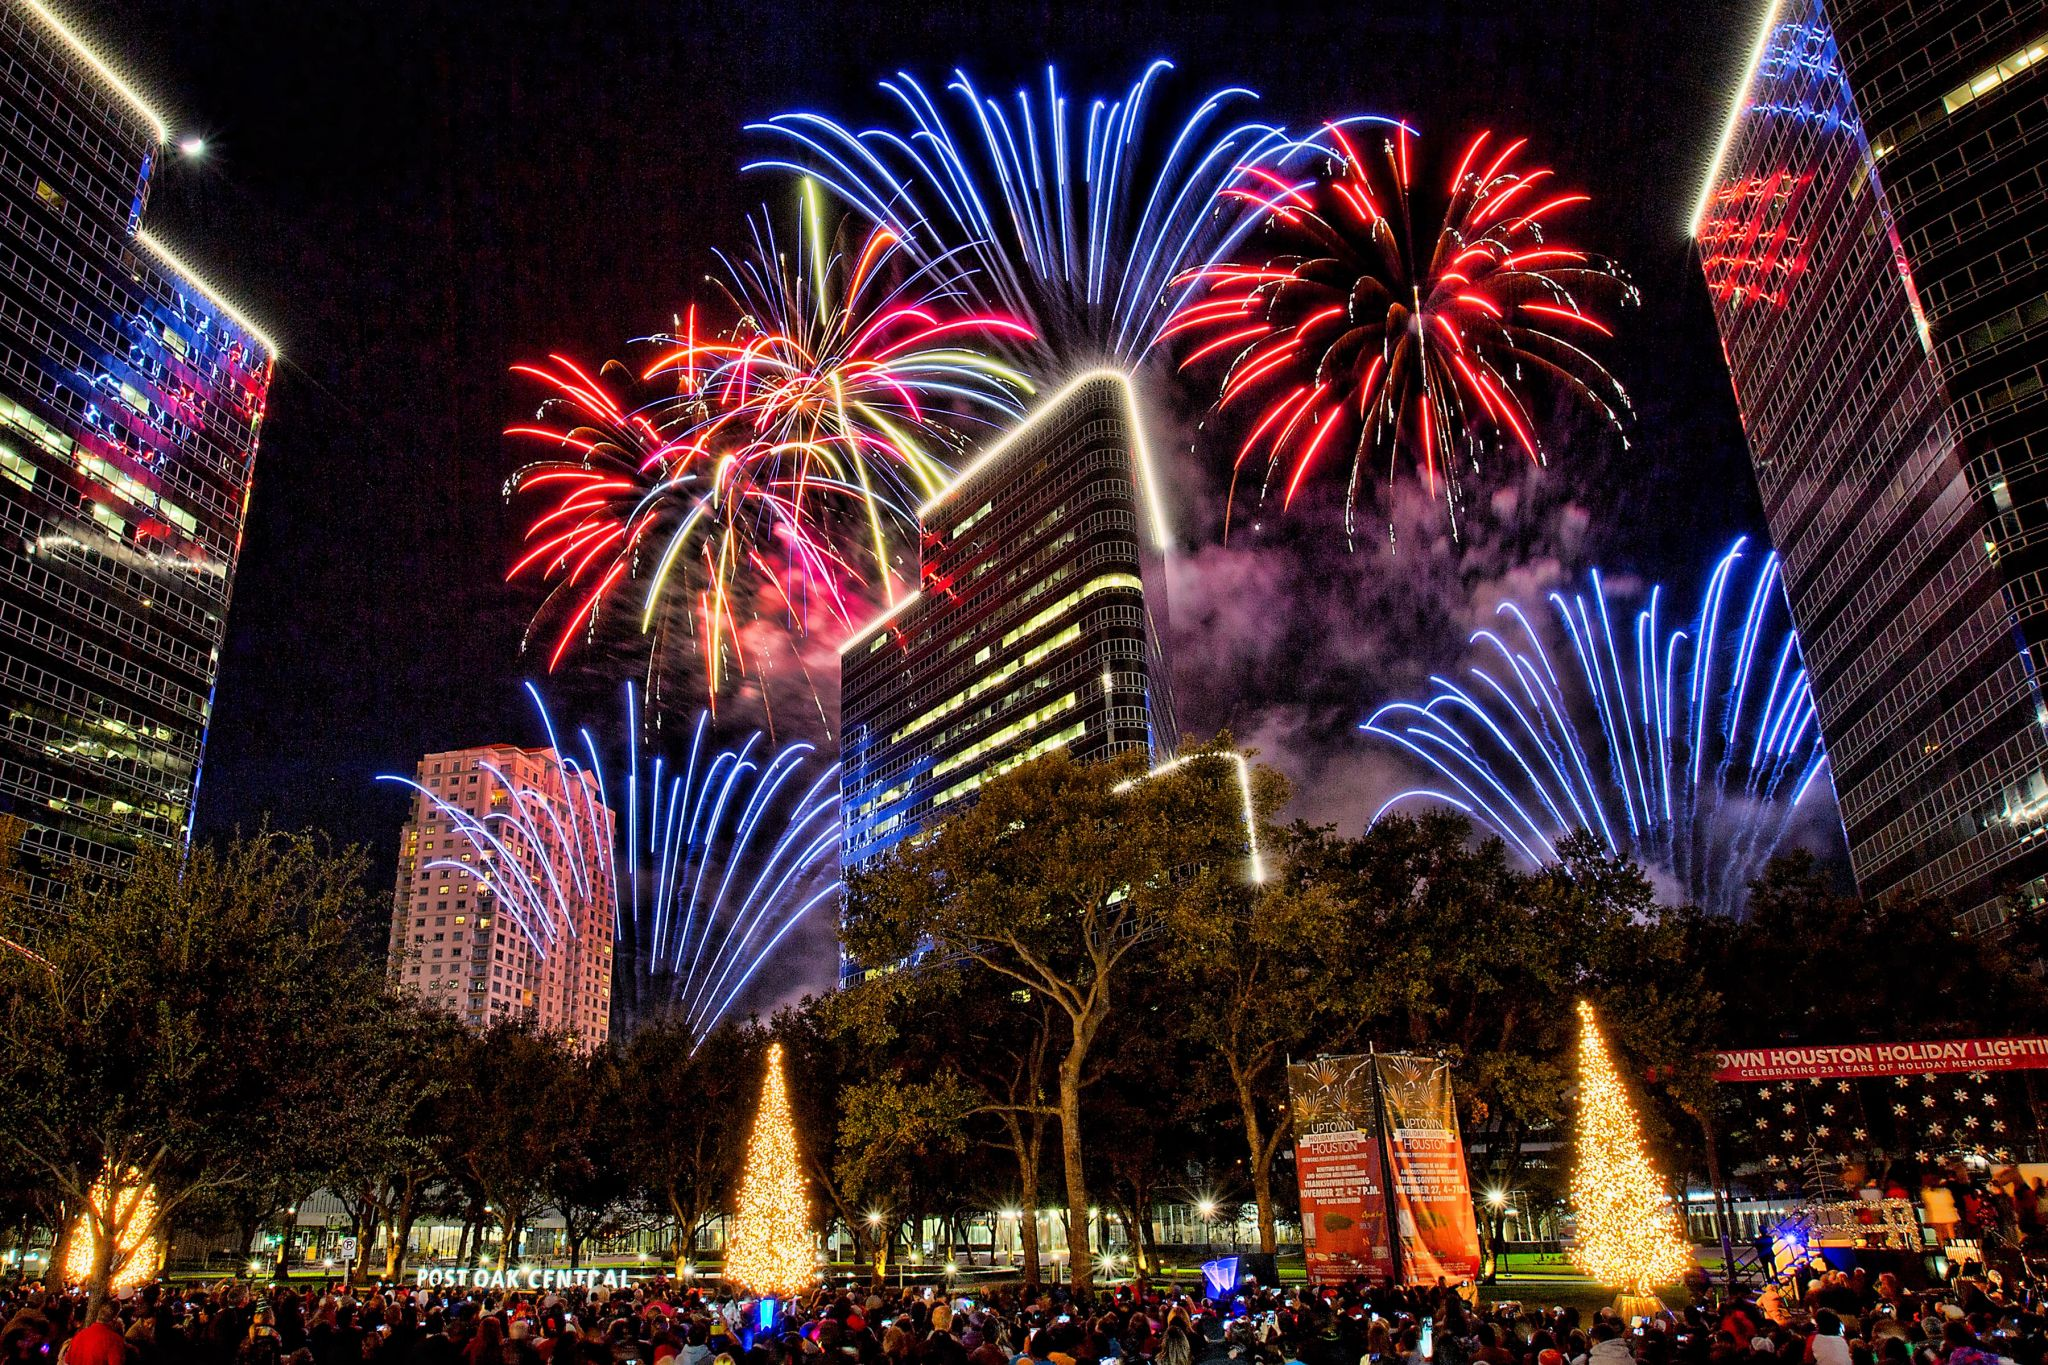 This is where to see fireworks in Houston on Thanksgiving night